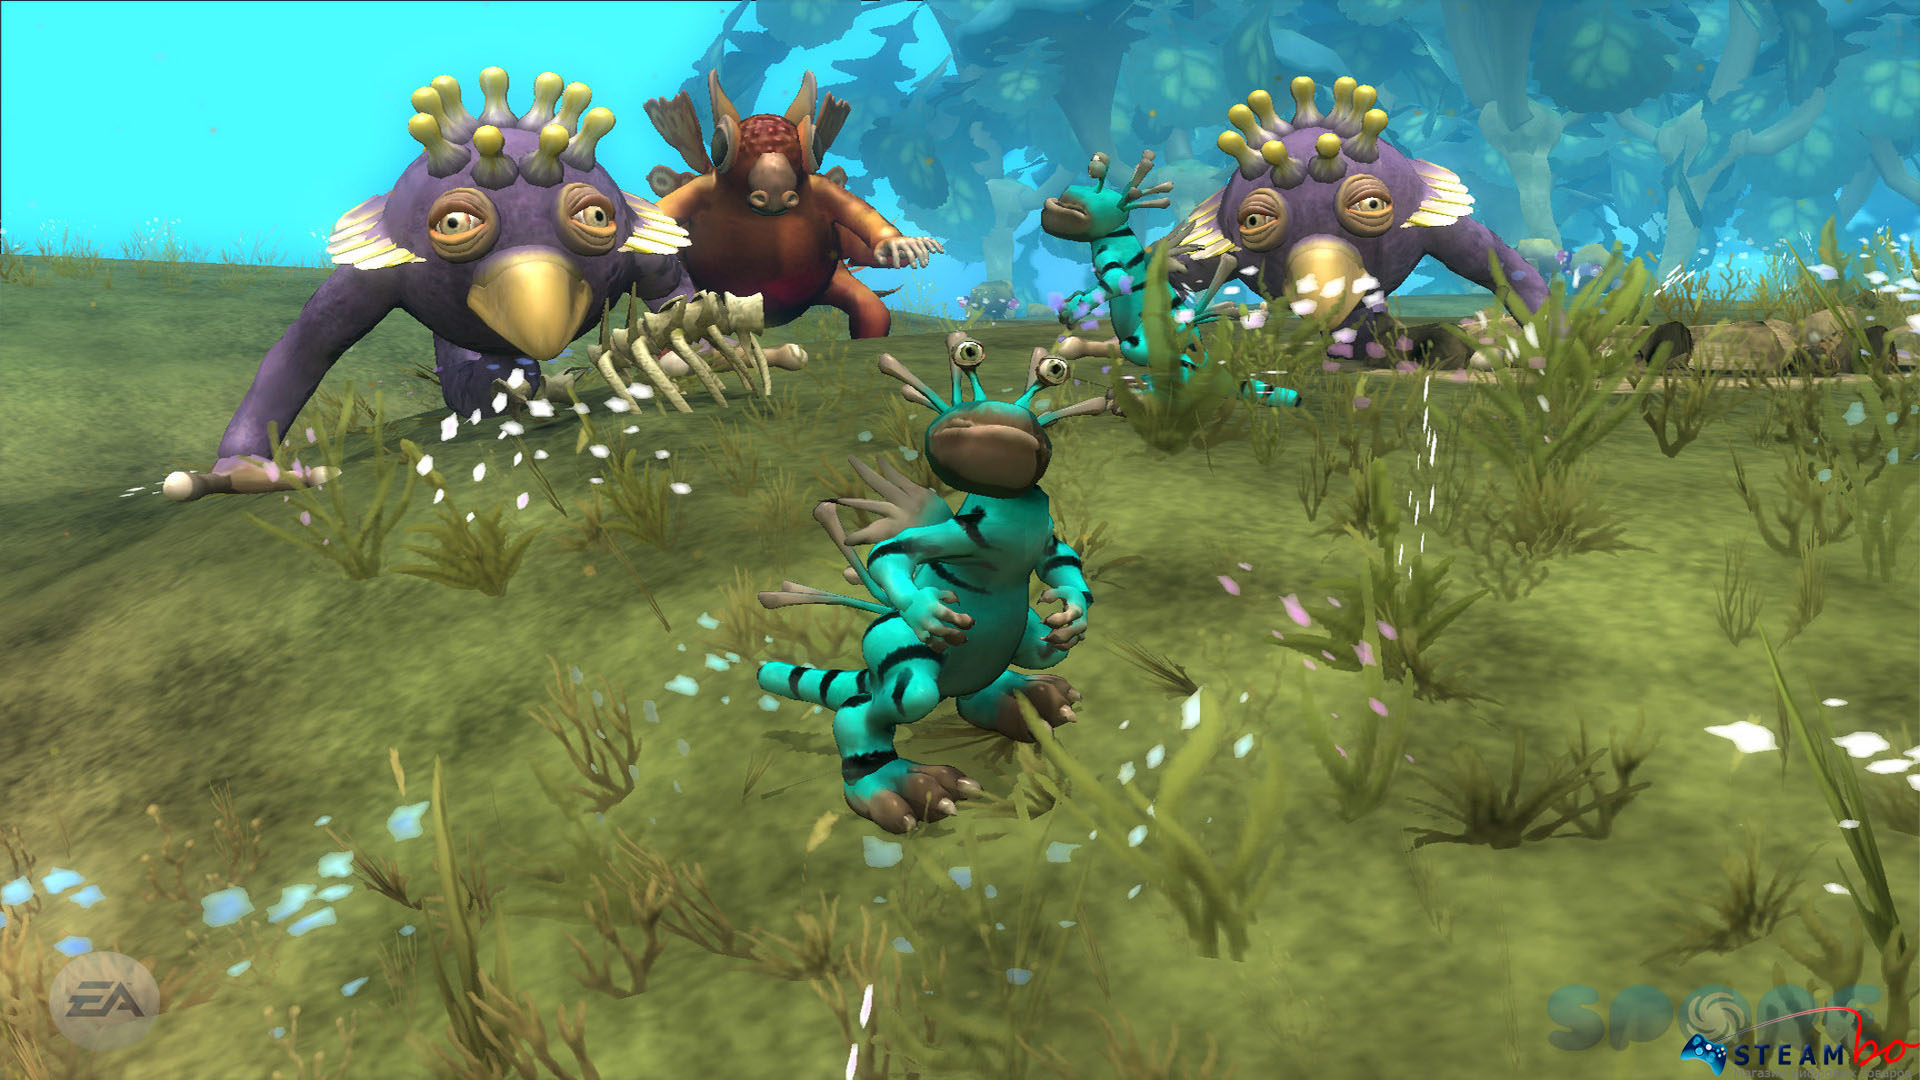 SPORE (Steam Gift RU) + Gifts